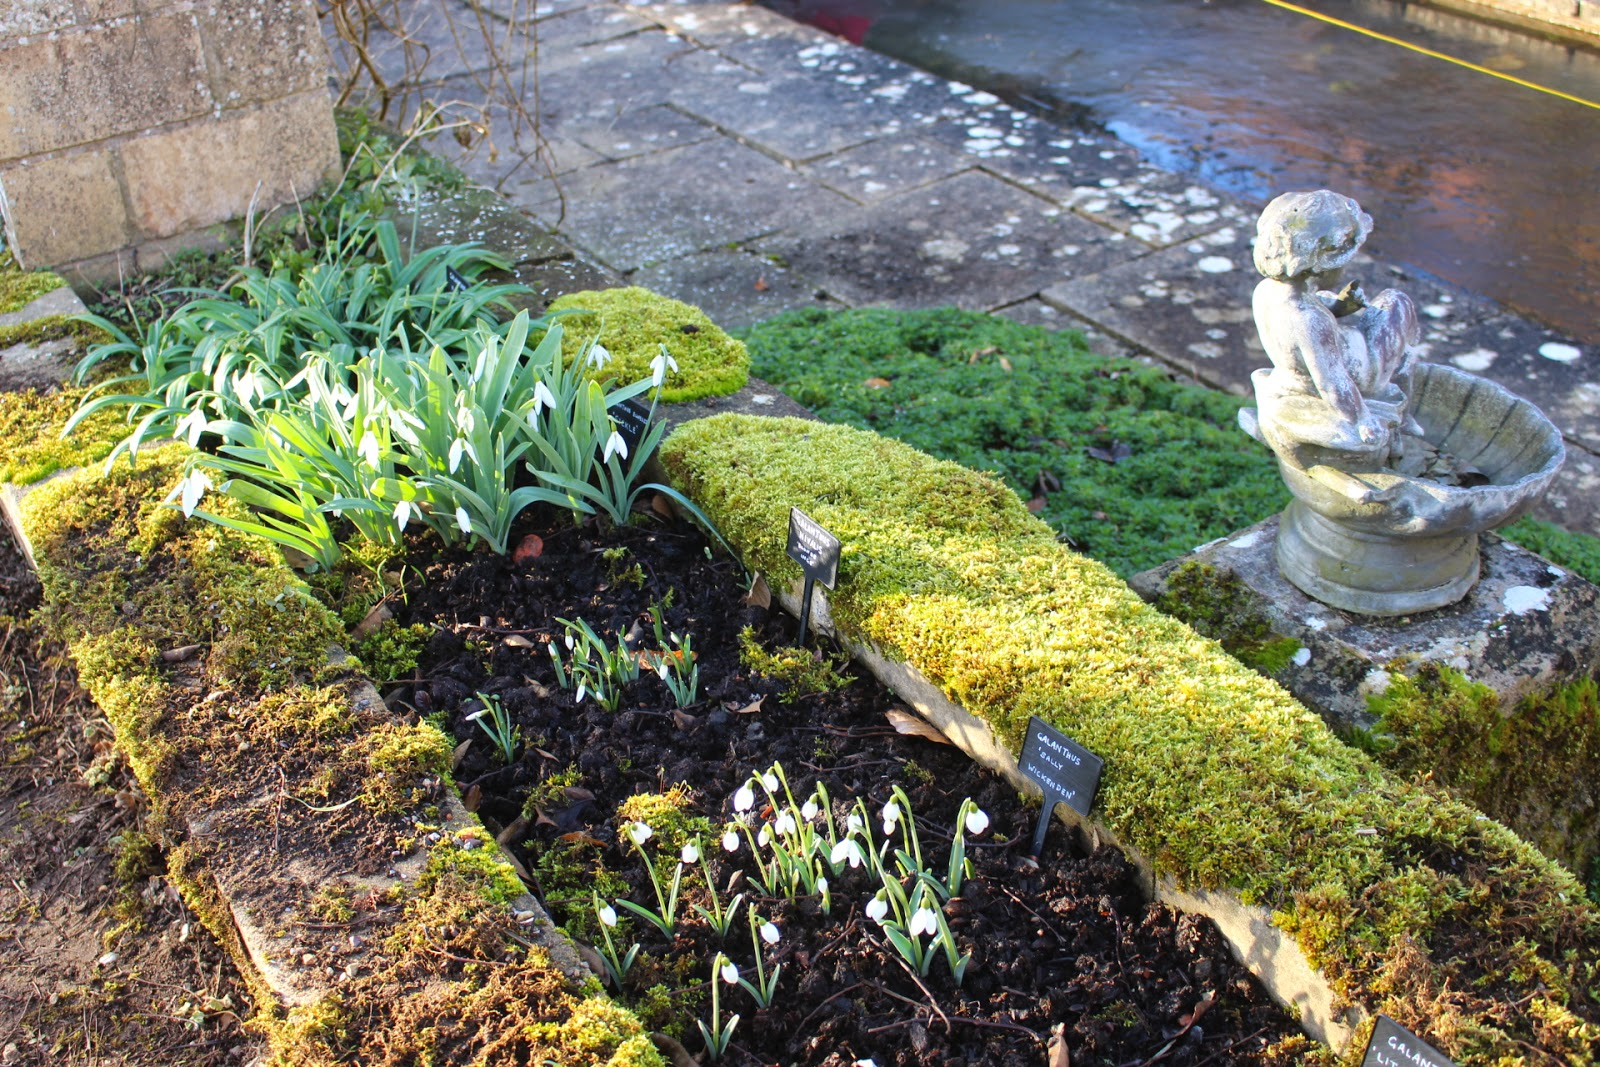 Photo showing the labelled raised display of snowdrops at Colesbourne Park